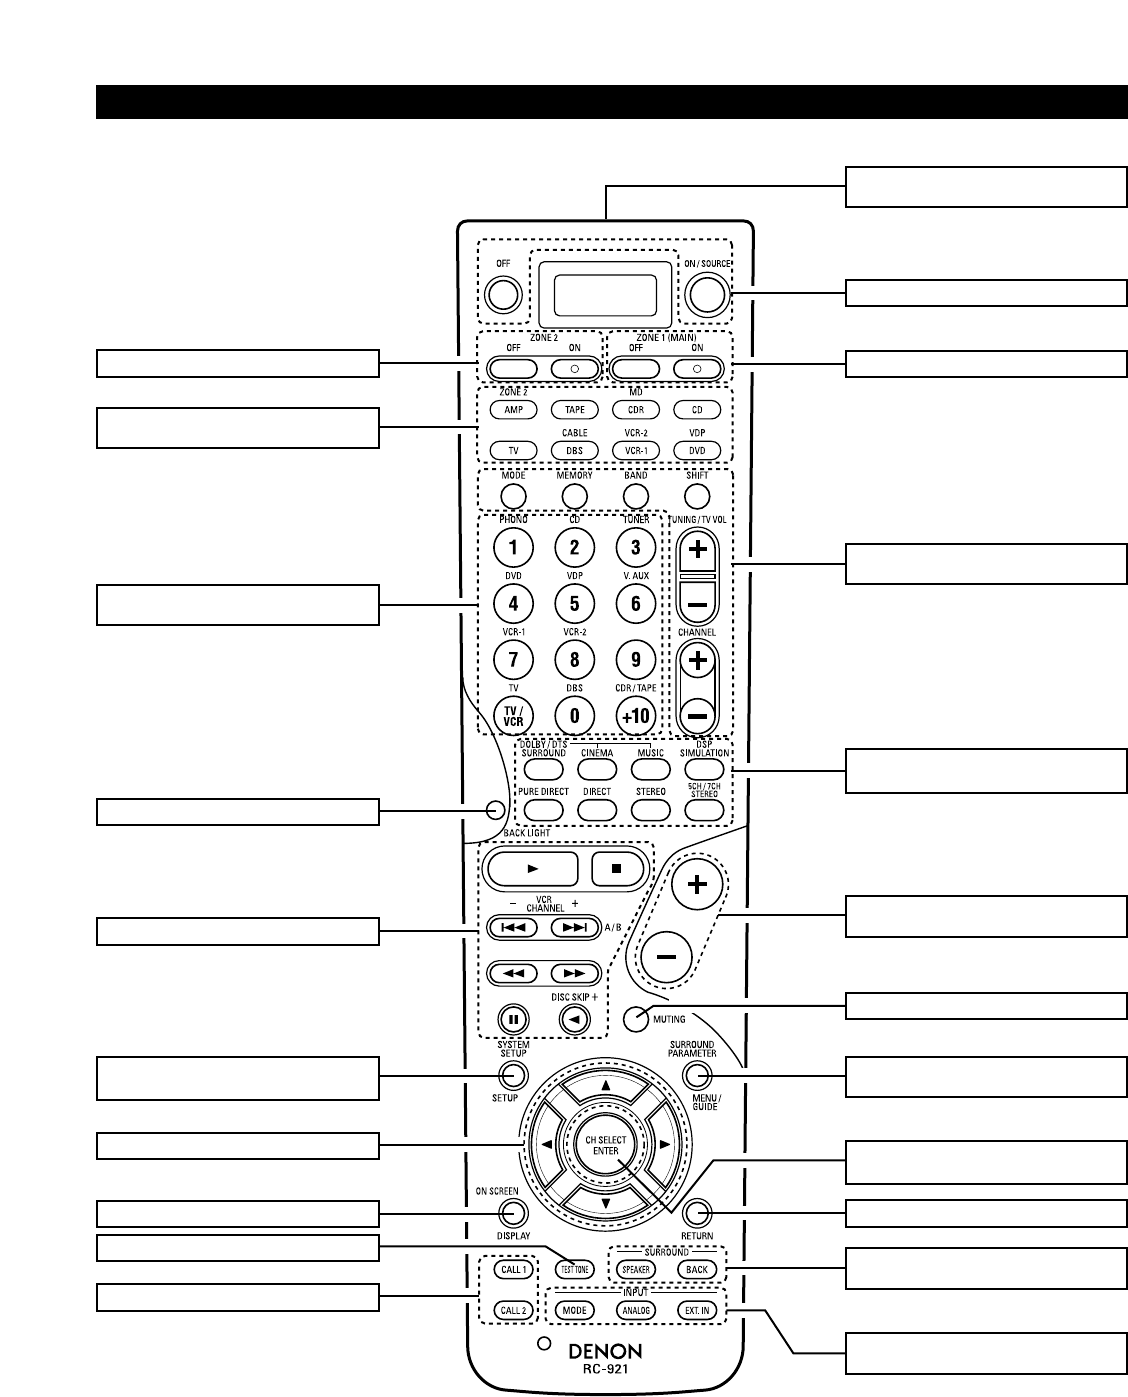 Page 15 of Denon Stereo Receiver AVR-1083 User Guide